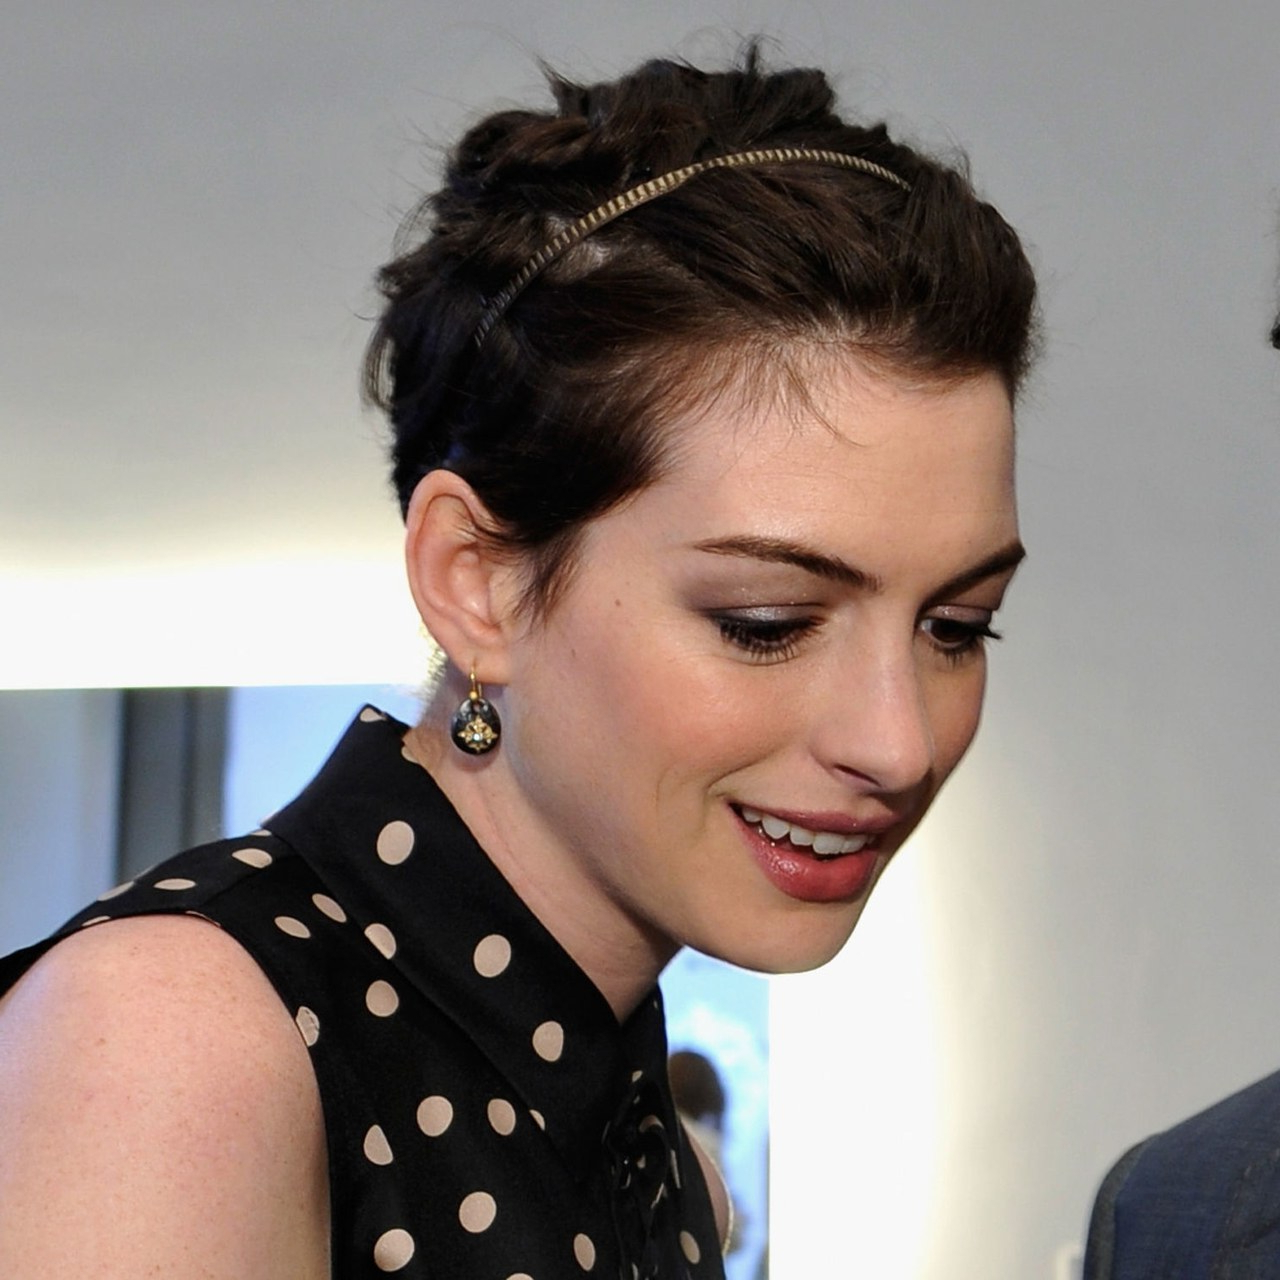 Anne Hathaway Uses A Headband To Create A Cute Hairstyle For Her Within Cute Short Hairstyles With Headbands (Gallery 19 of 25)